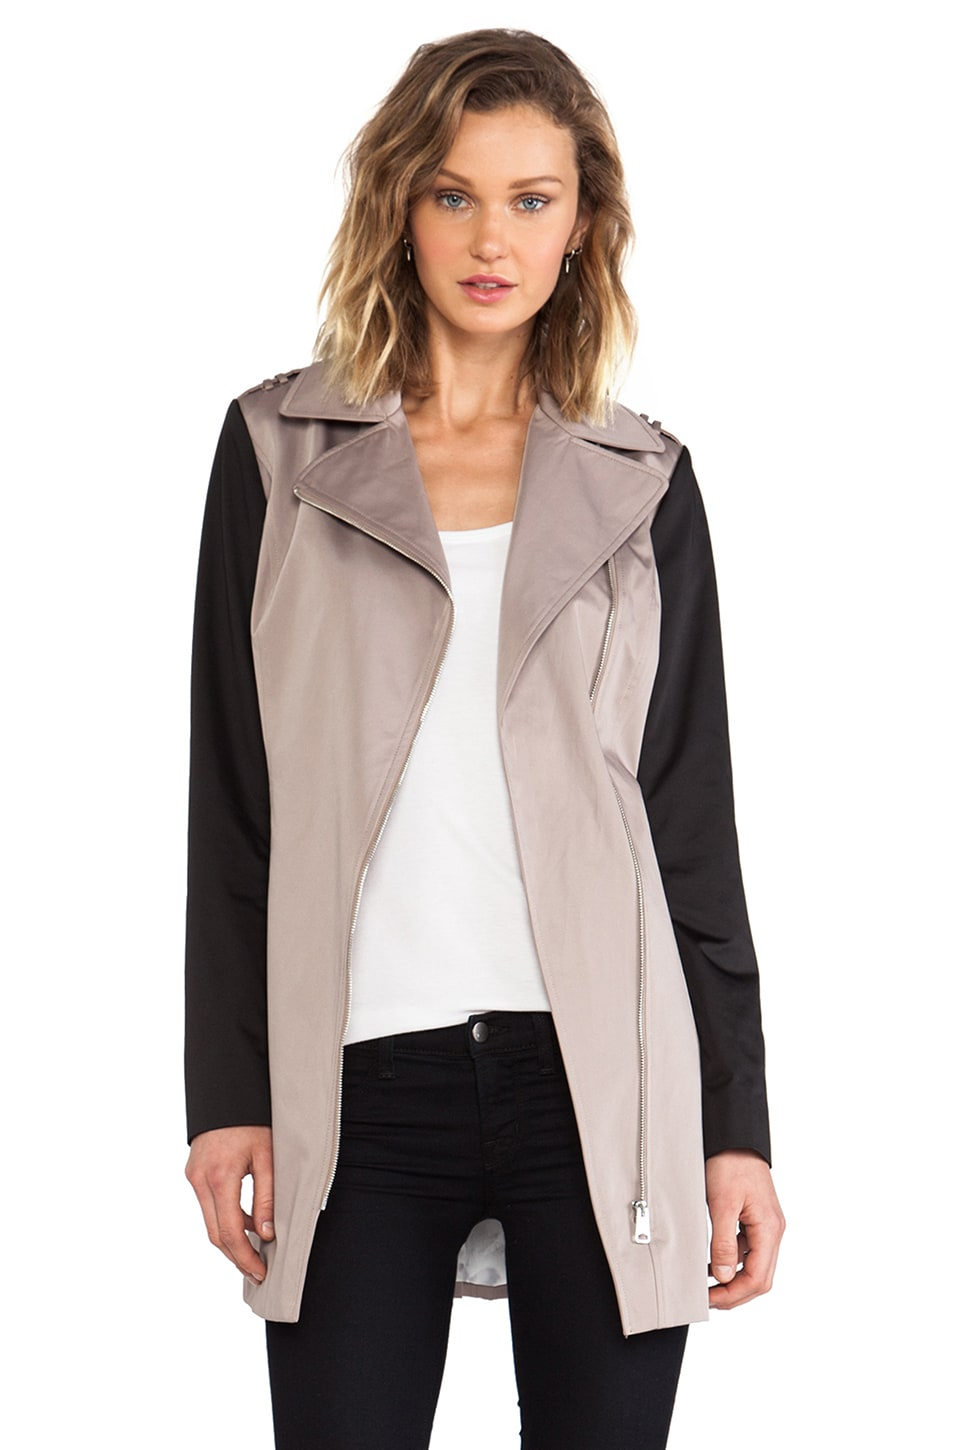 Soia & Kyo Ainsley Trench Coat in Mushroom